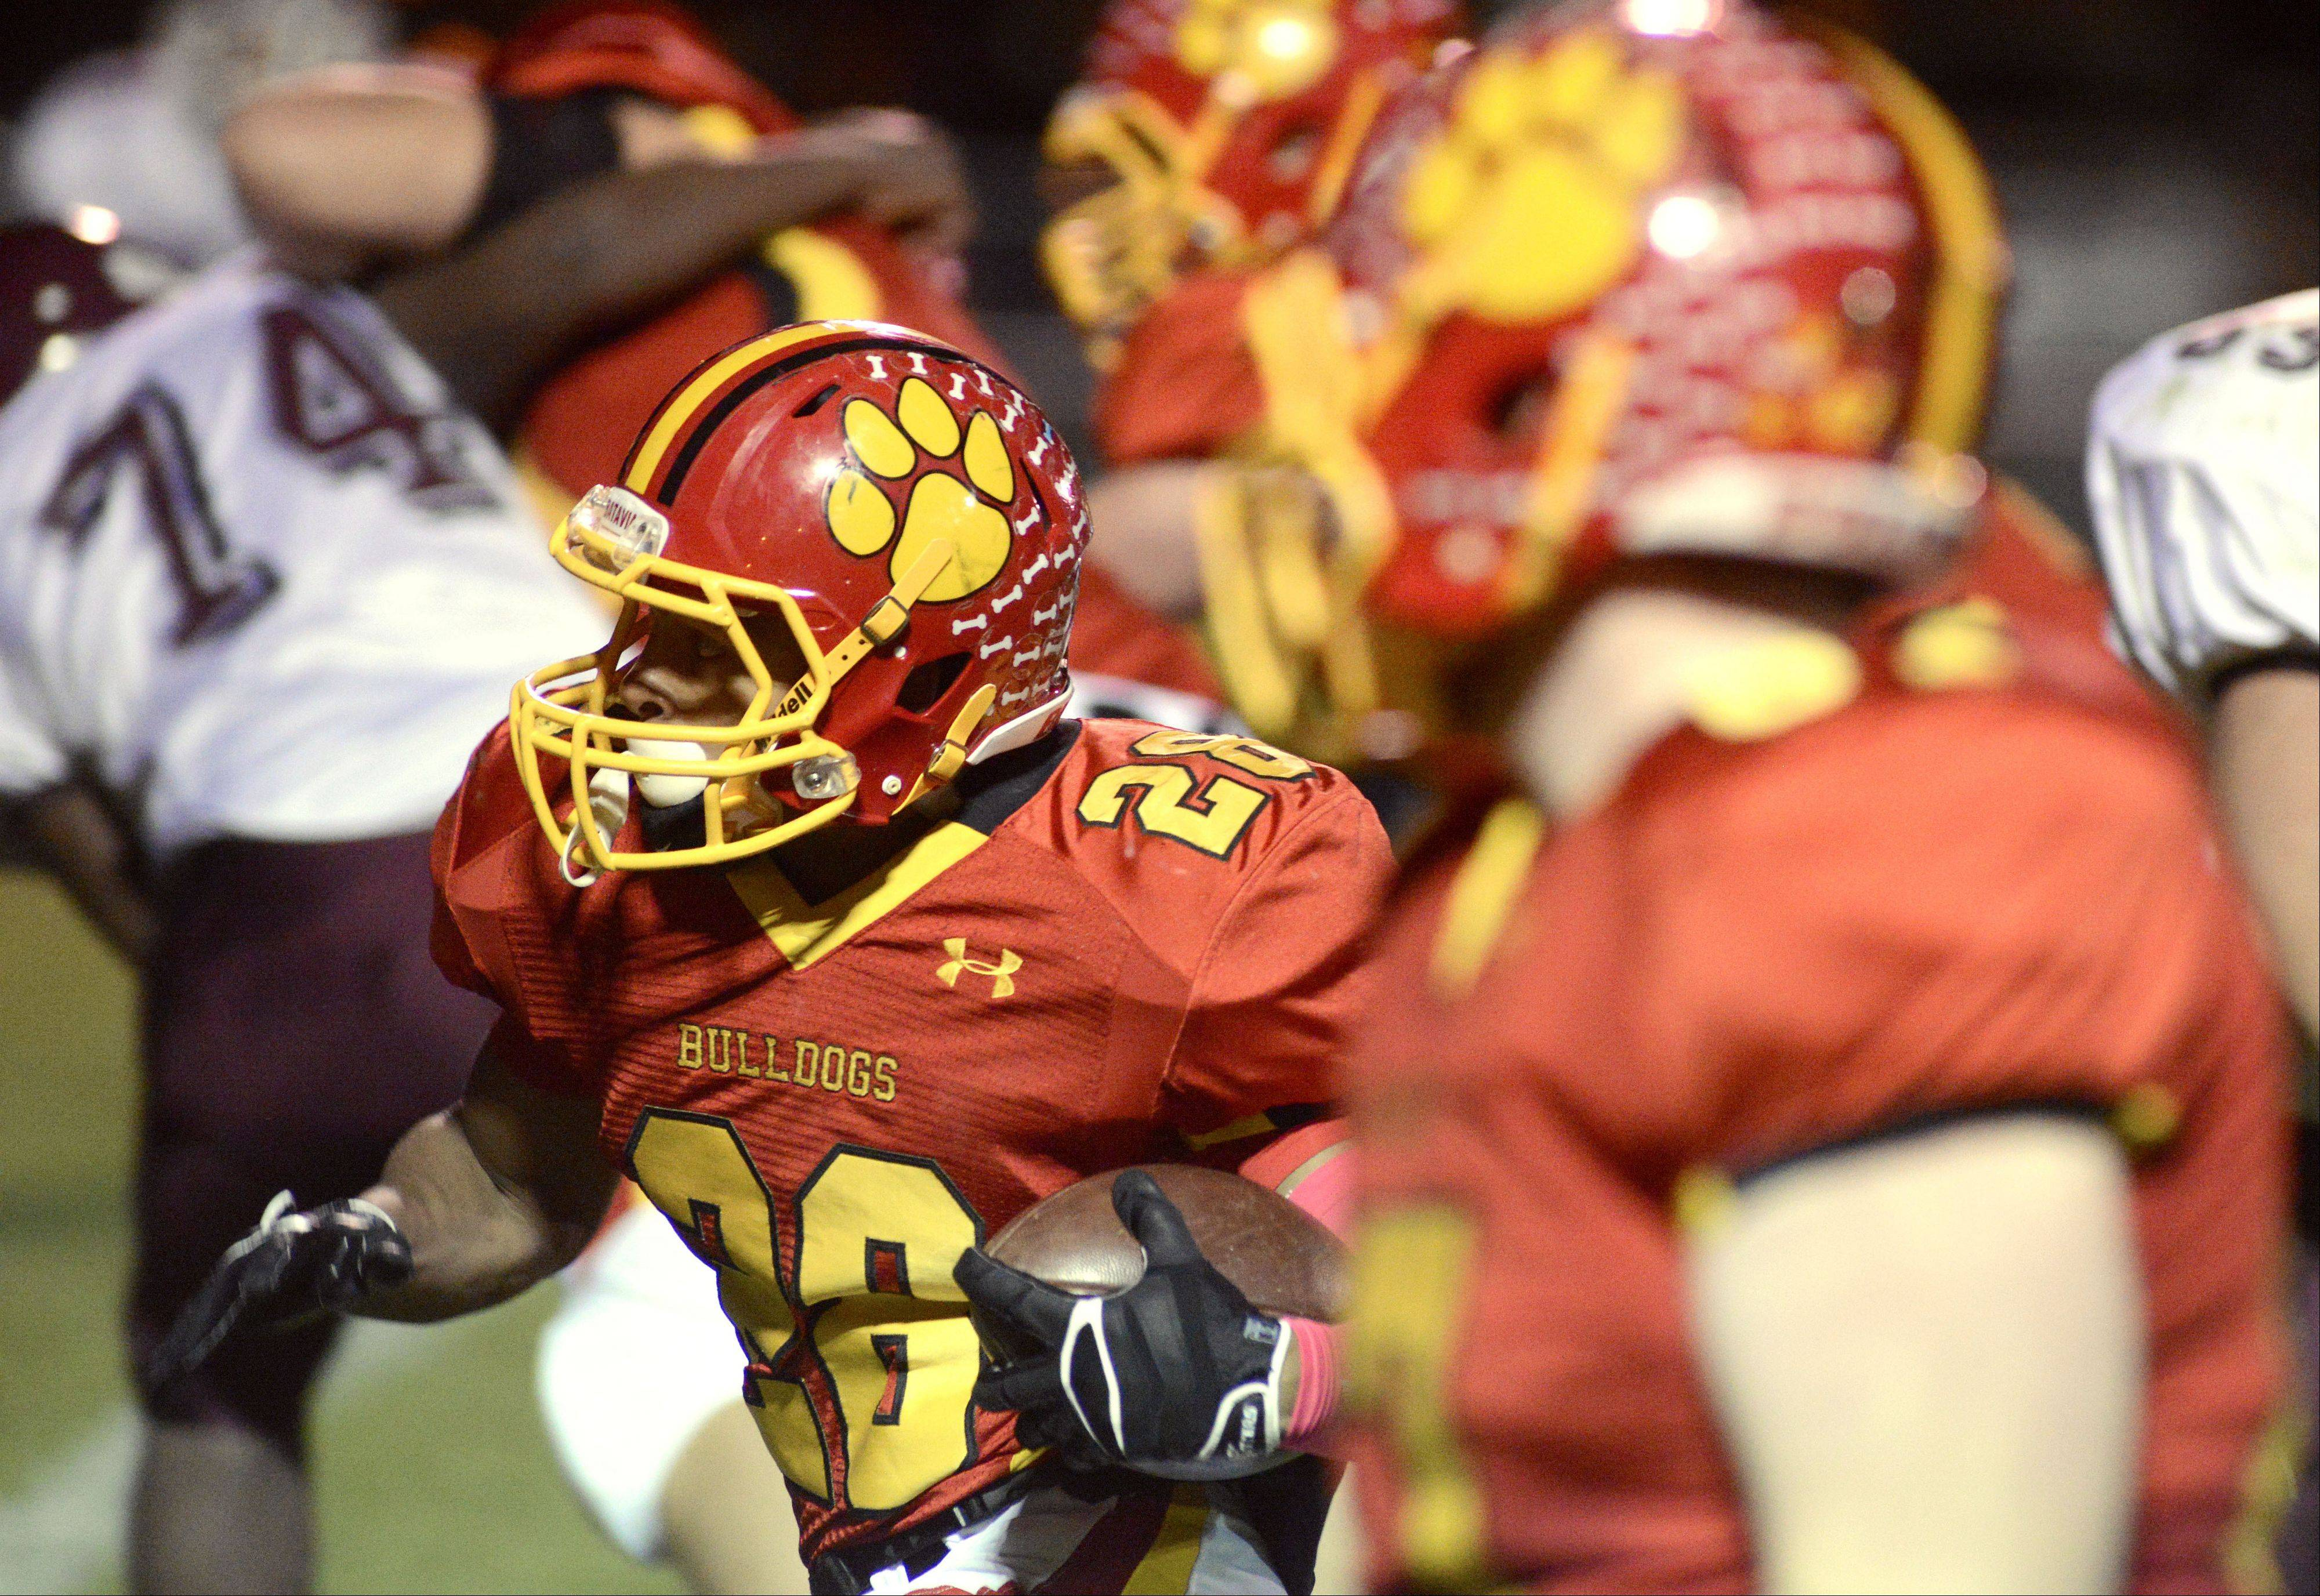 Batavia's Anthony Scaccia pops out of a hole in Elgin's defense on his way to a touchdown in the first quarter.